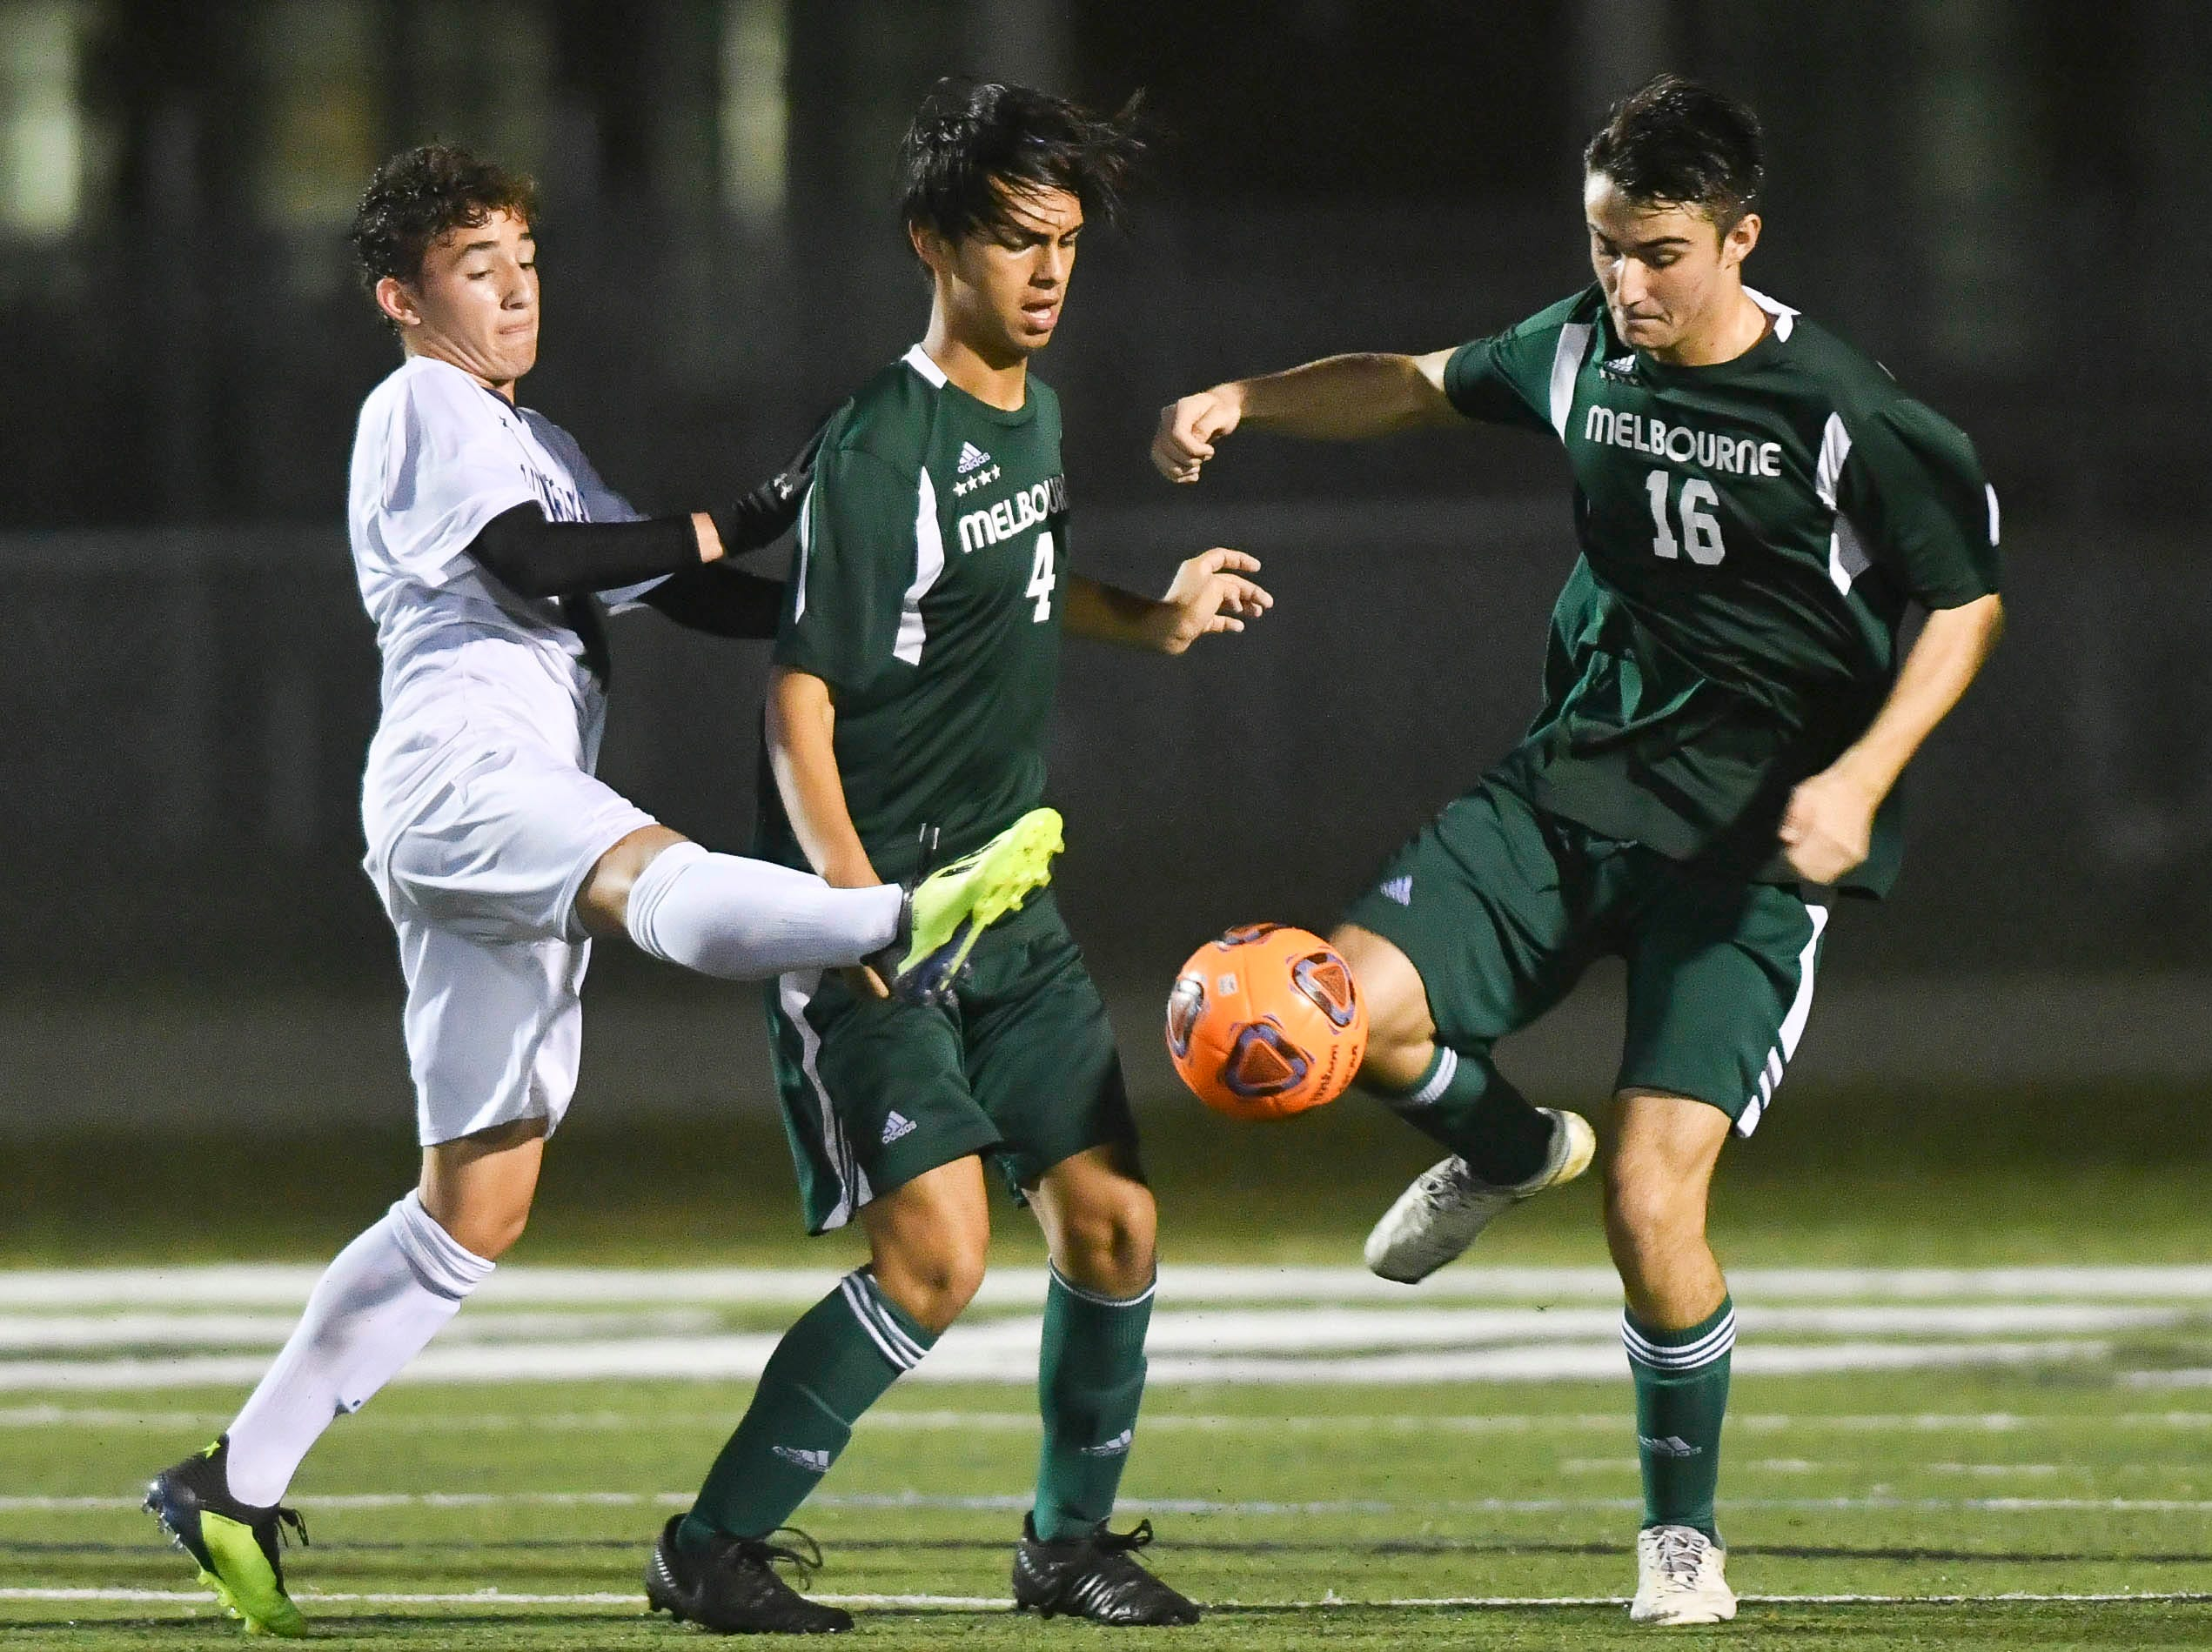 Nick Martinez (4) and Calvin MacDonald of Melbourne direct the ball away from a Windermere attacker during Saturday's Class 4A boys soccer regional semifinal.